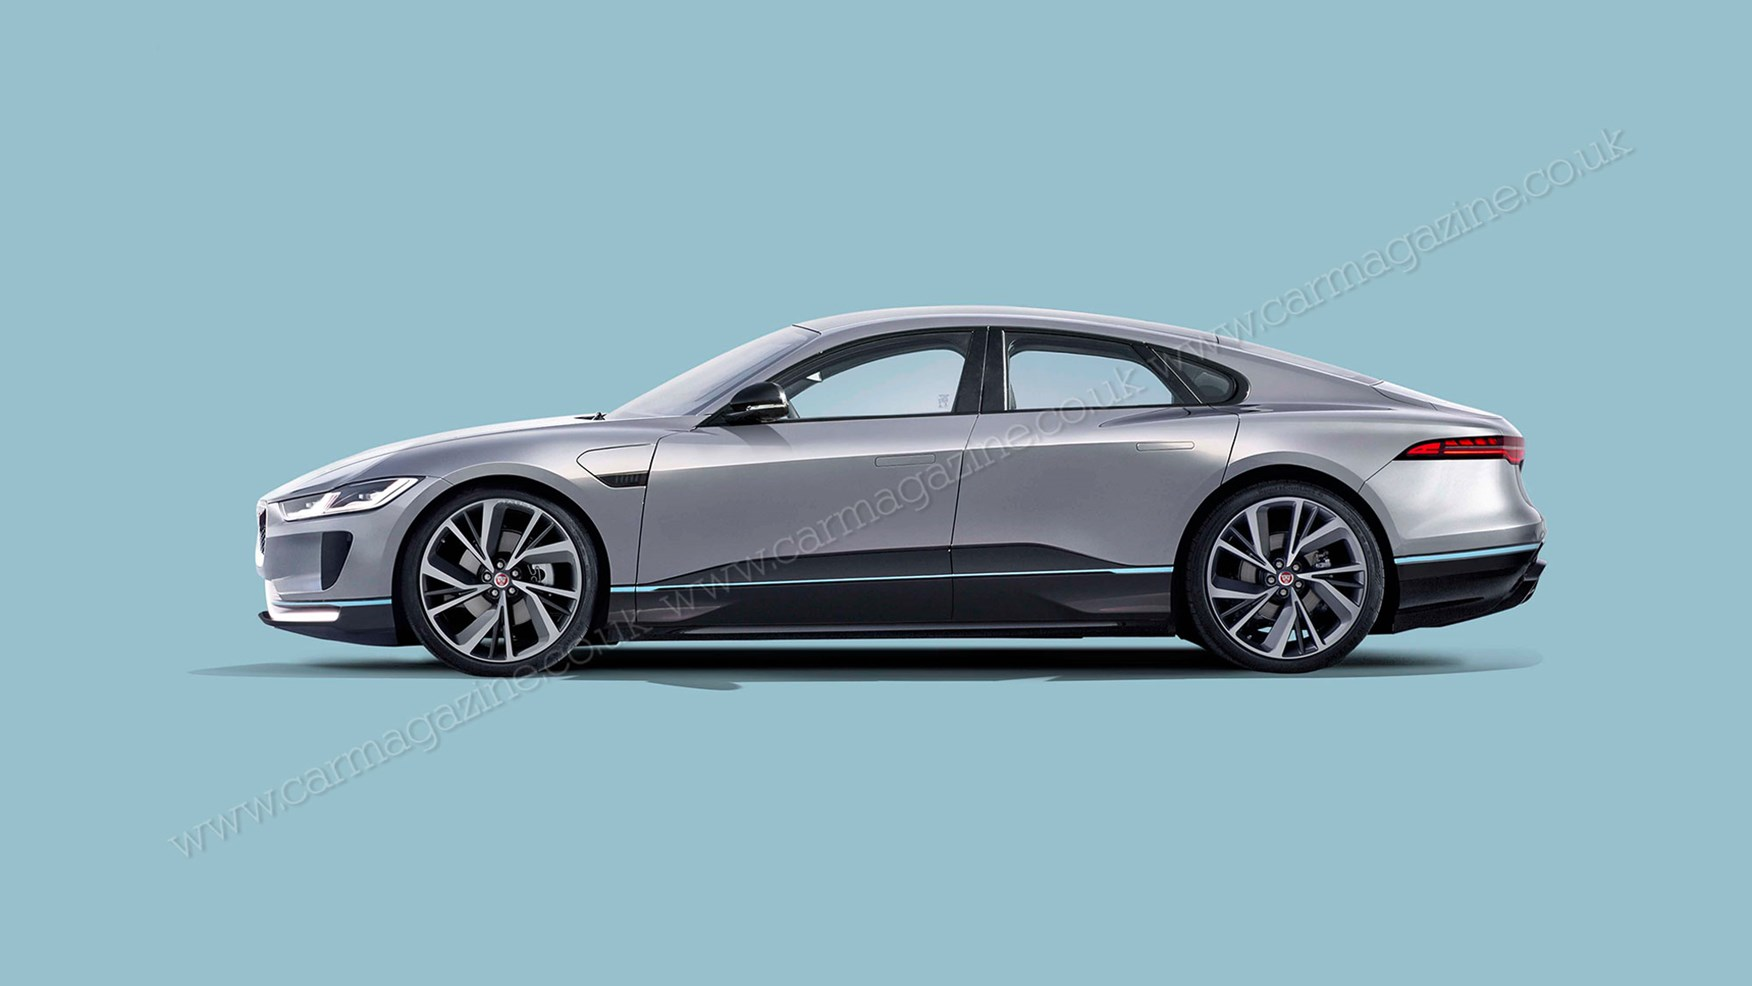 56 The 2020 Jaguar XJ Picture